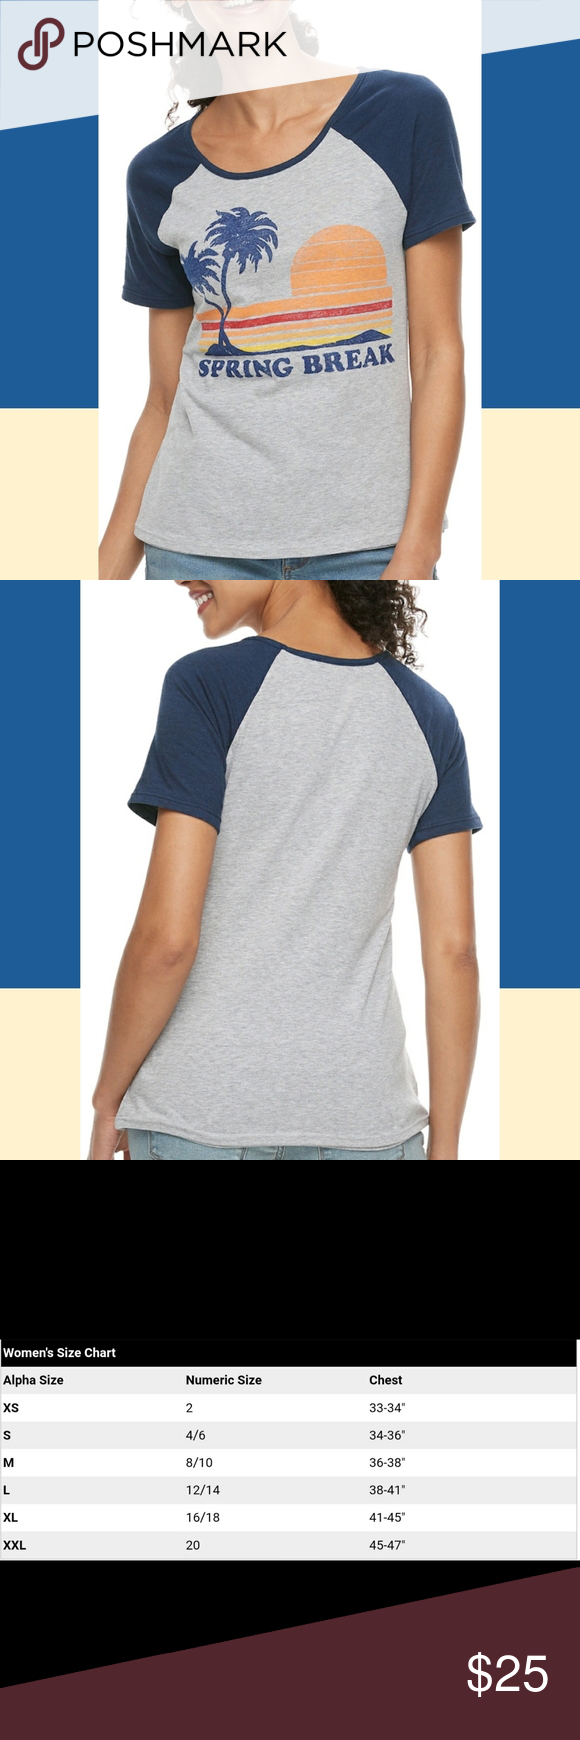 """📢 """"Spring Break"""" Heather Gray & Blue Graphic Tee 📢 Means BOGO Free!   You don't have to be a college student to go on Spring Break! Yeah, I know…"""